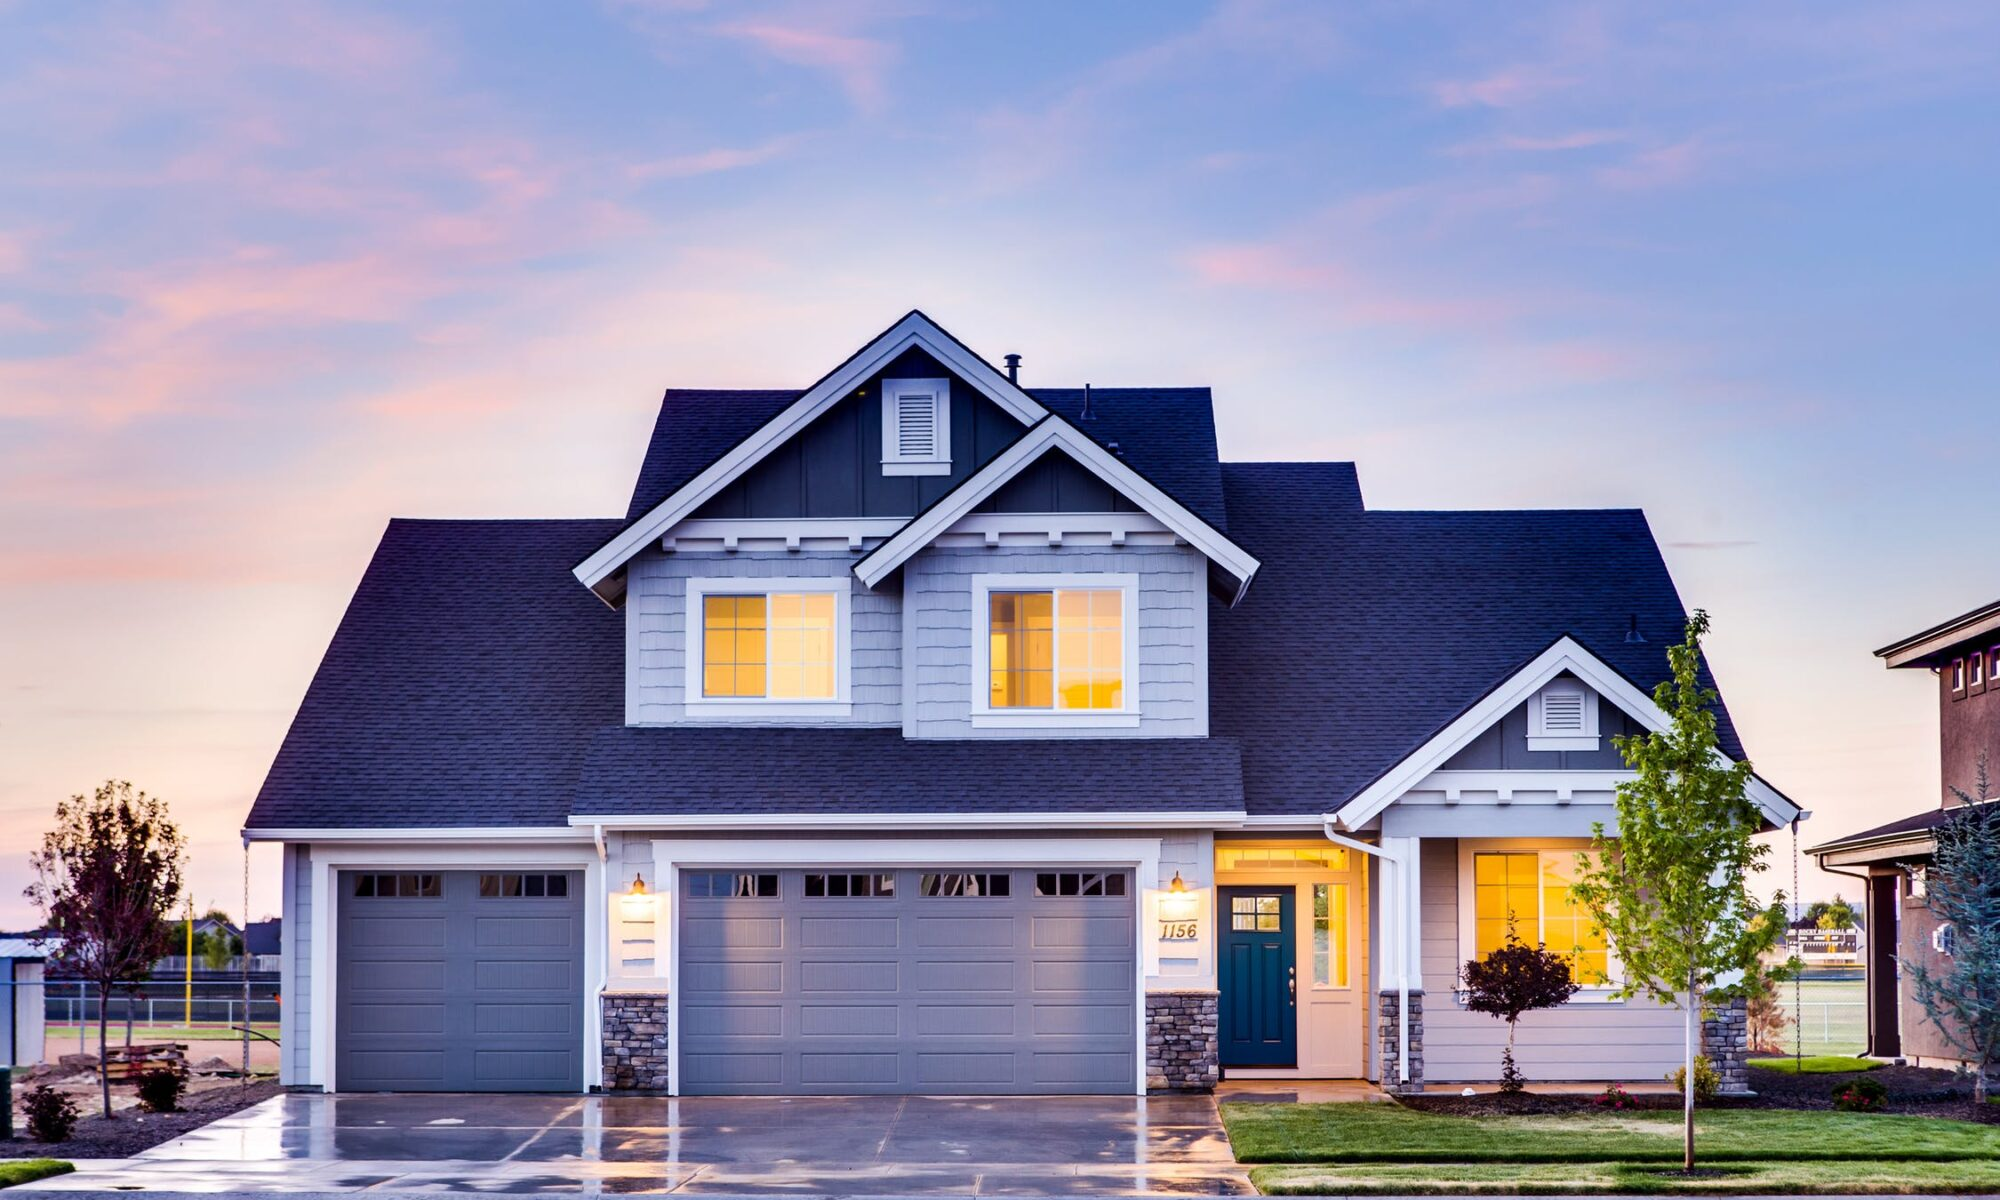 What Must I Consider Before Buying a Home?